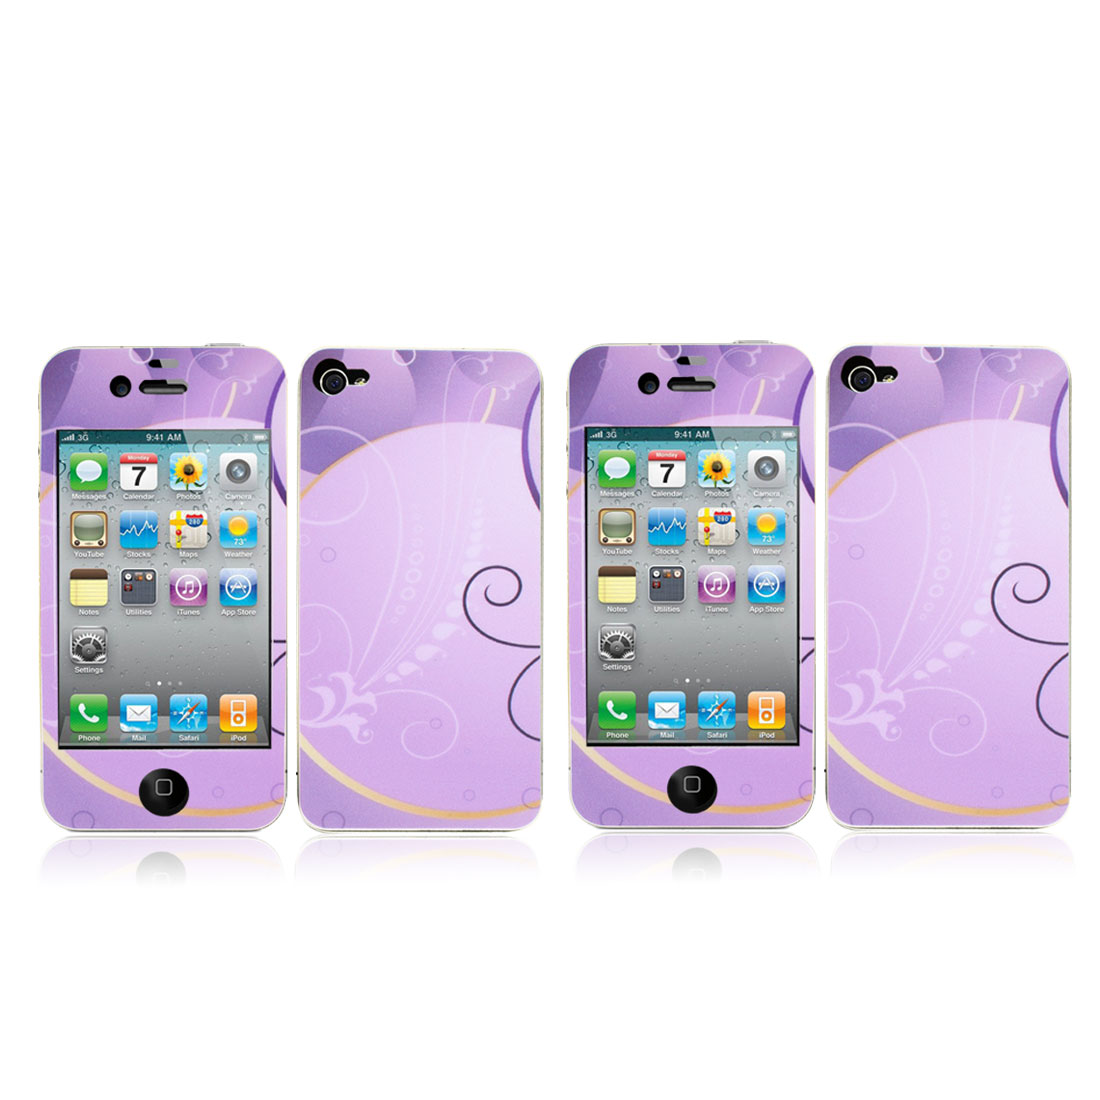 Front + Back Sticker Decal Guard Shield Protector Purple 2 Pcs for iPhone 4 4G 4S